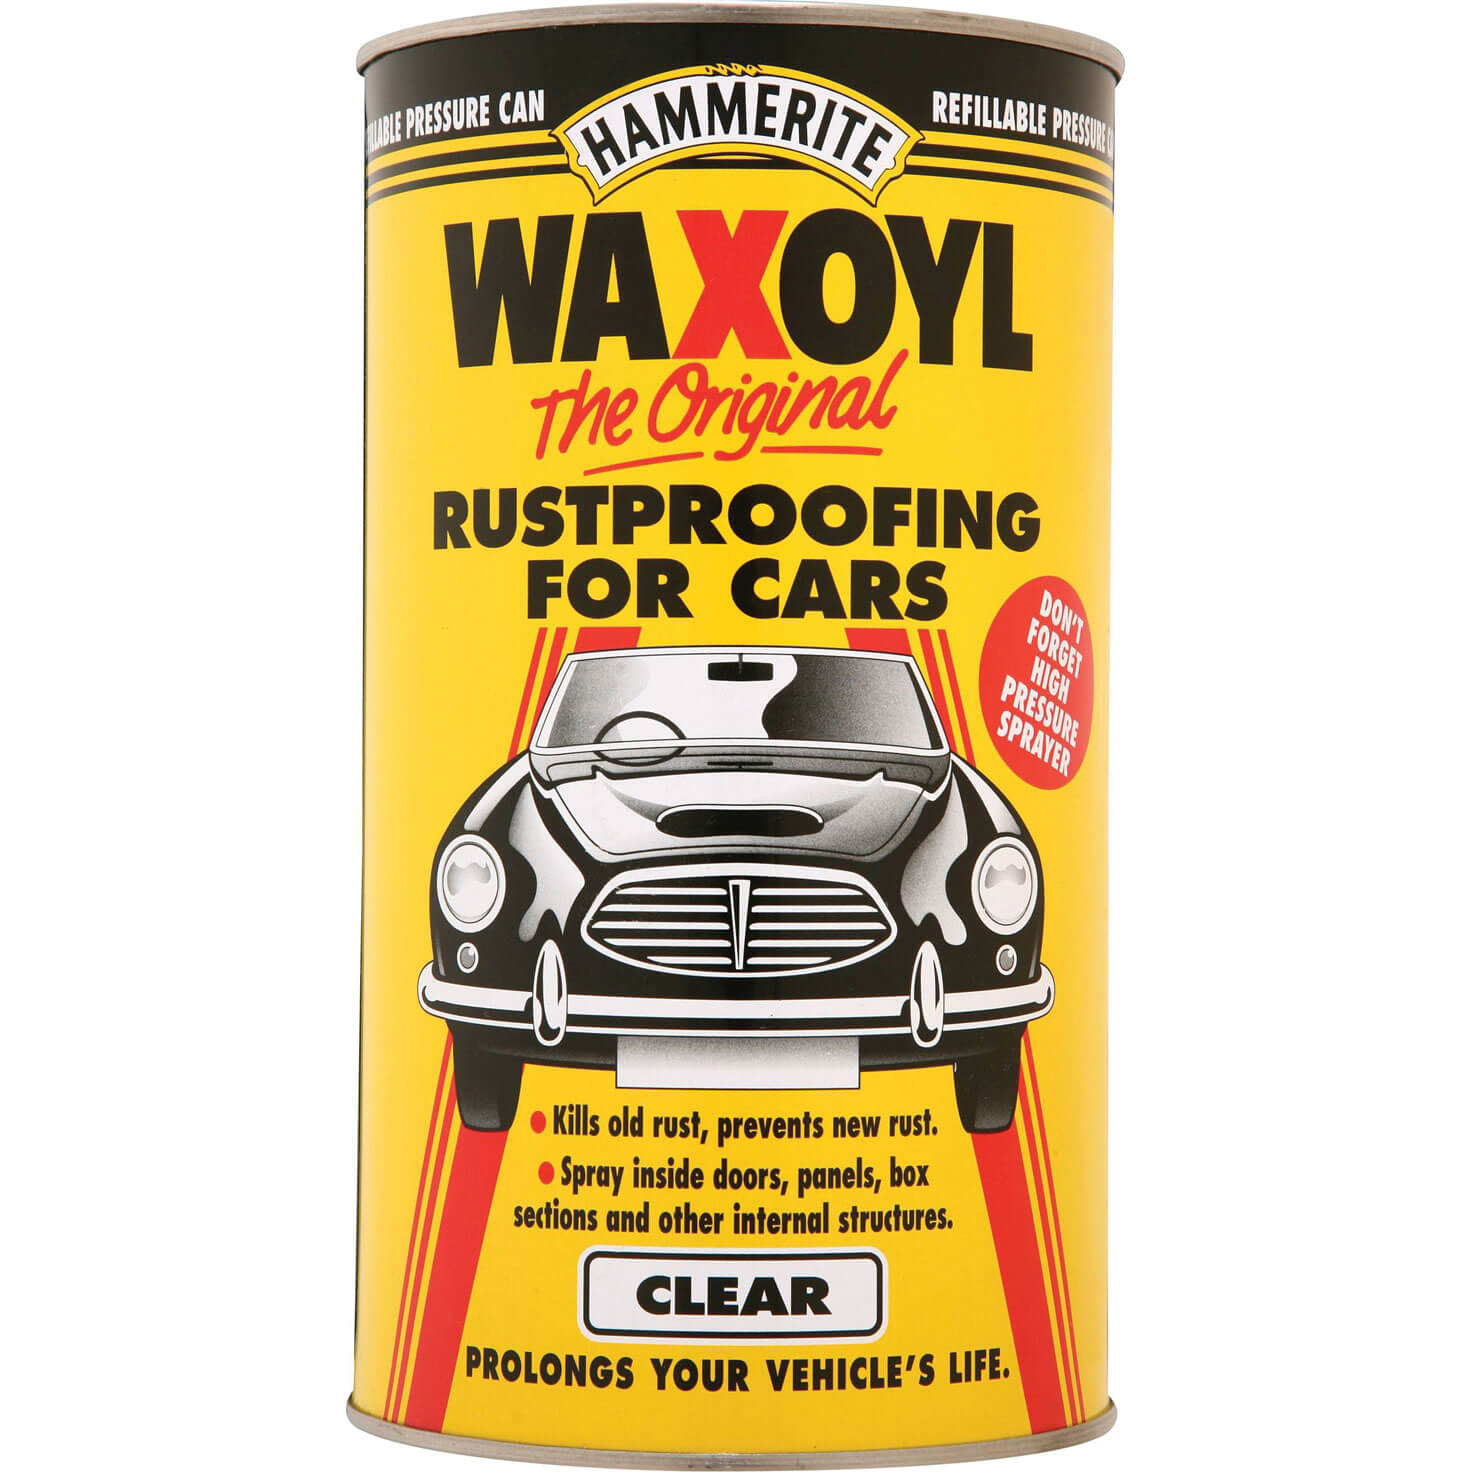 Image of Hammerite Waxoyl Rust Remover and Protector Pressure Can Clear 2.5l